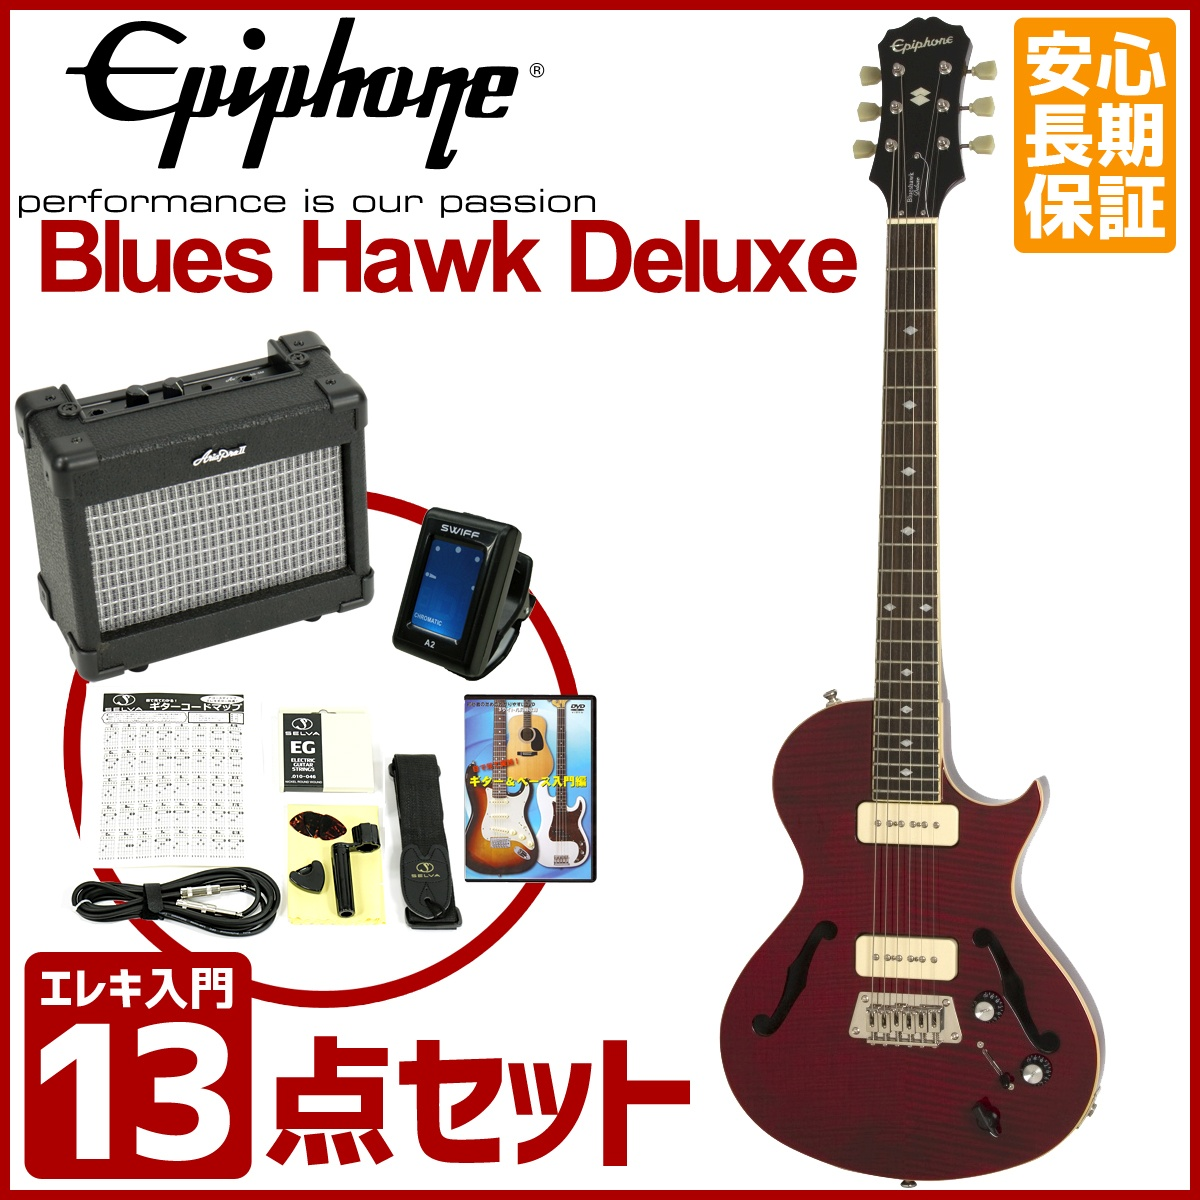 Epiphone / Blues Hawk Deluxe Wine Red【スタンダード入門13点セット】 エピフォン エレキギター入門セット